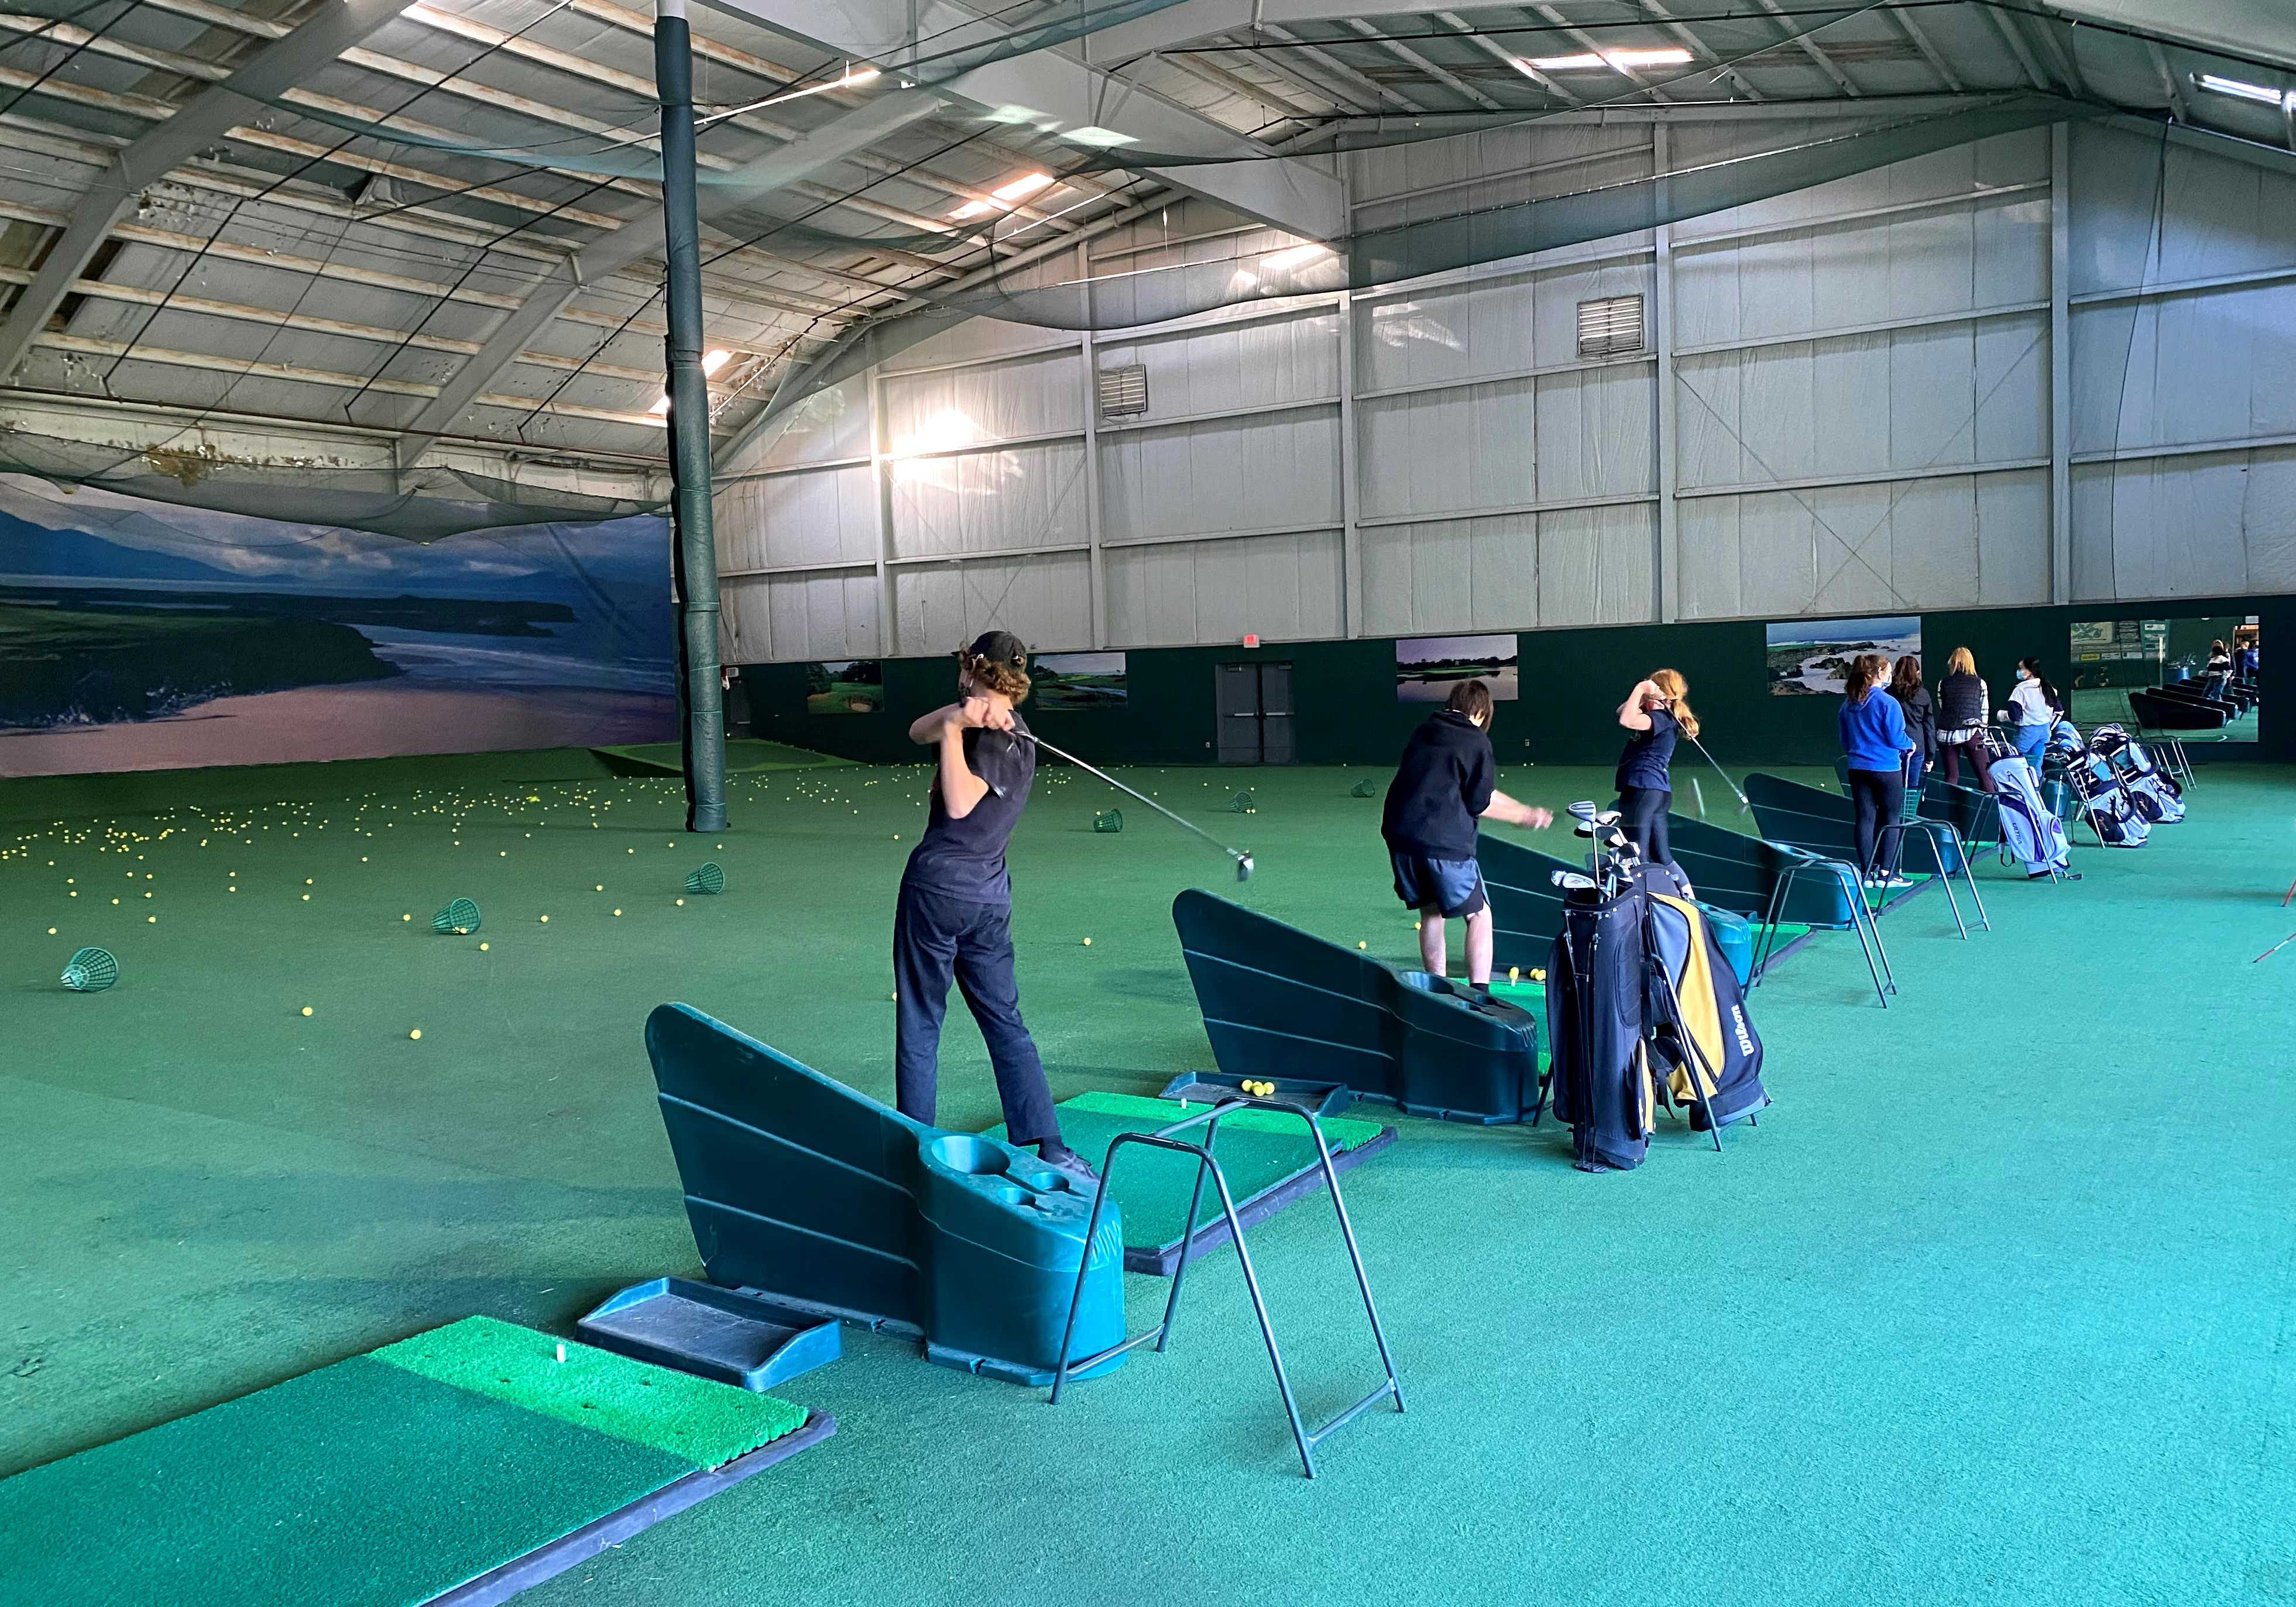 Students practice at the indoor driving range at Chinook Winds Golf Resort on Wednesday in Lincoln City.